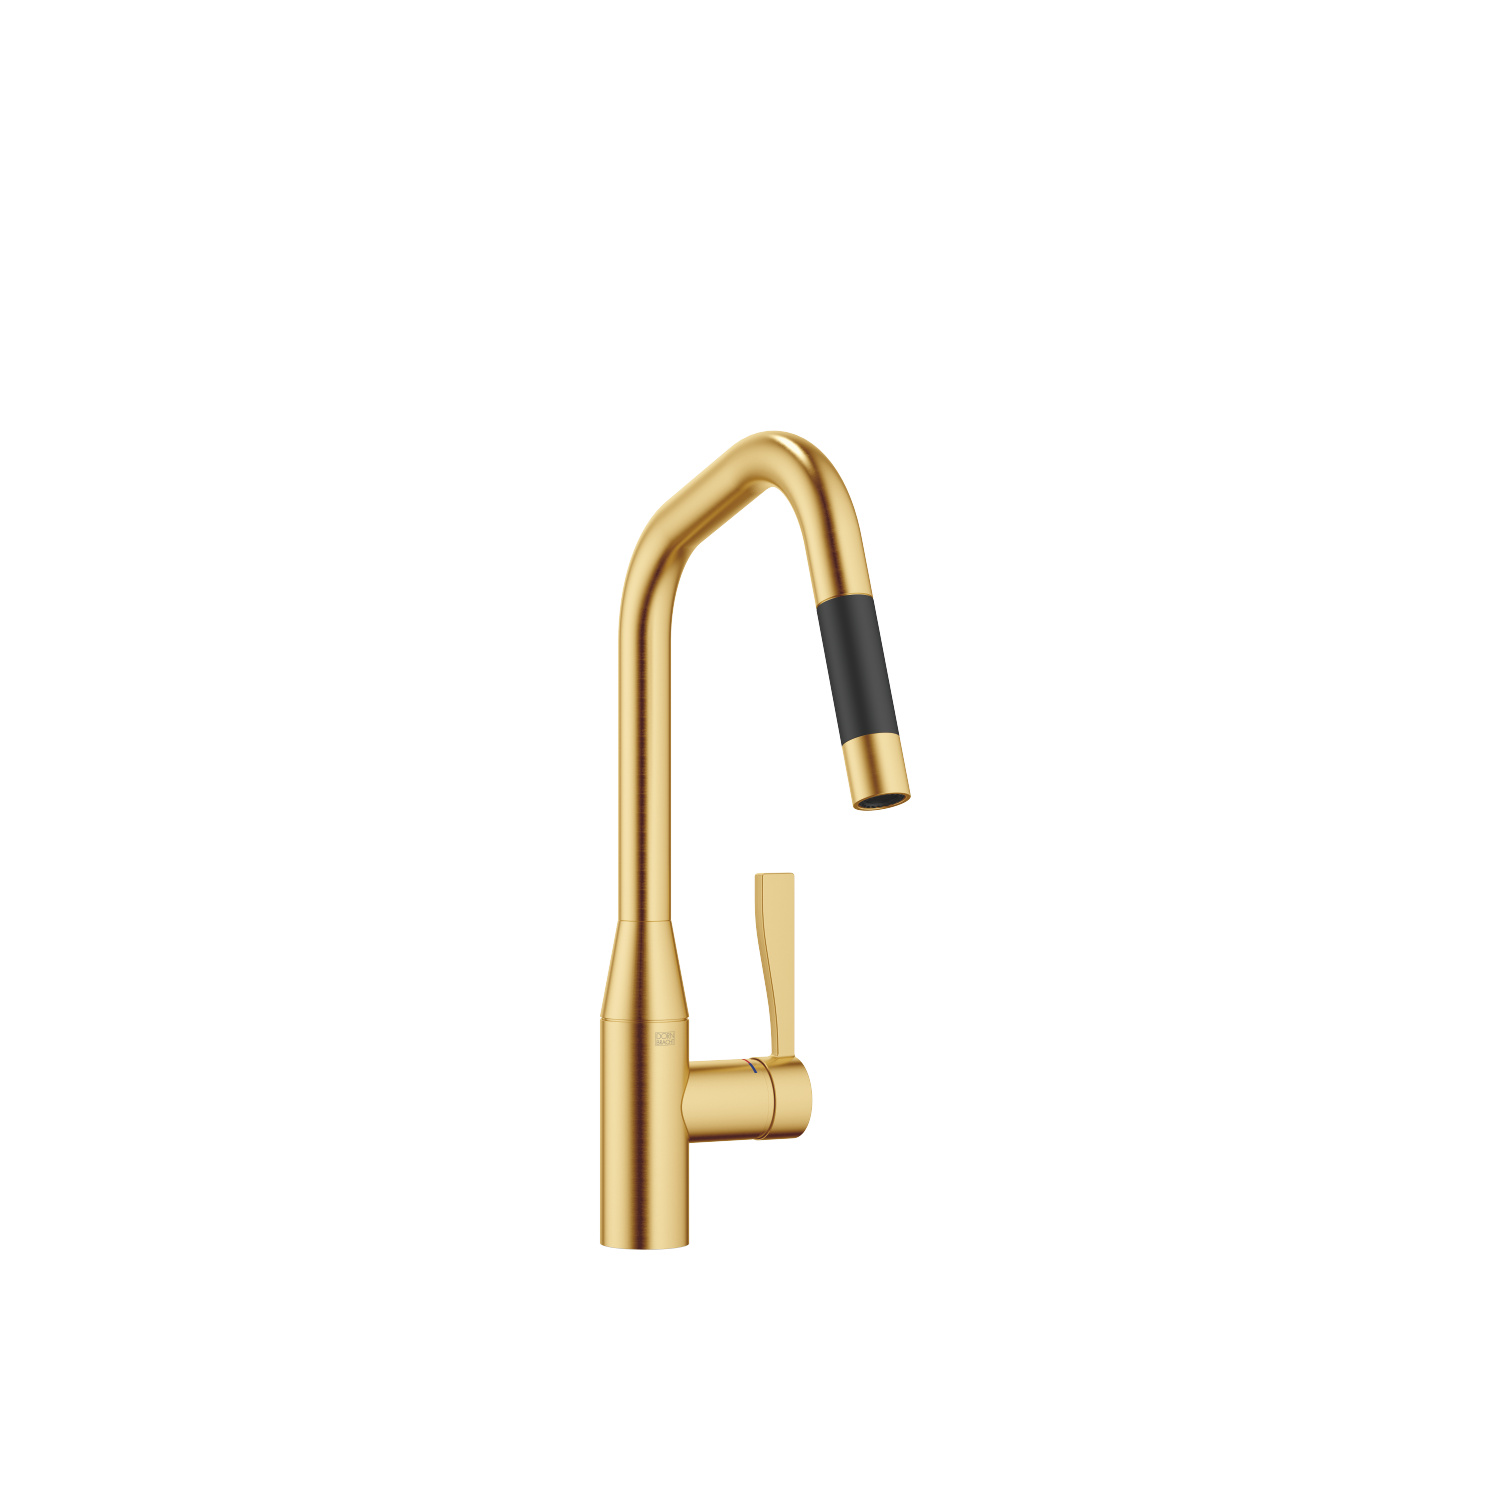 Single-lever mixer pull-down with spray function - Brushed Durabrass